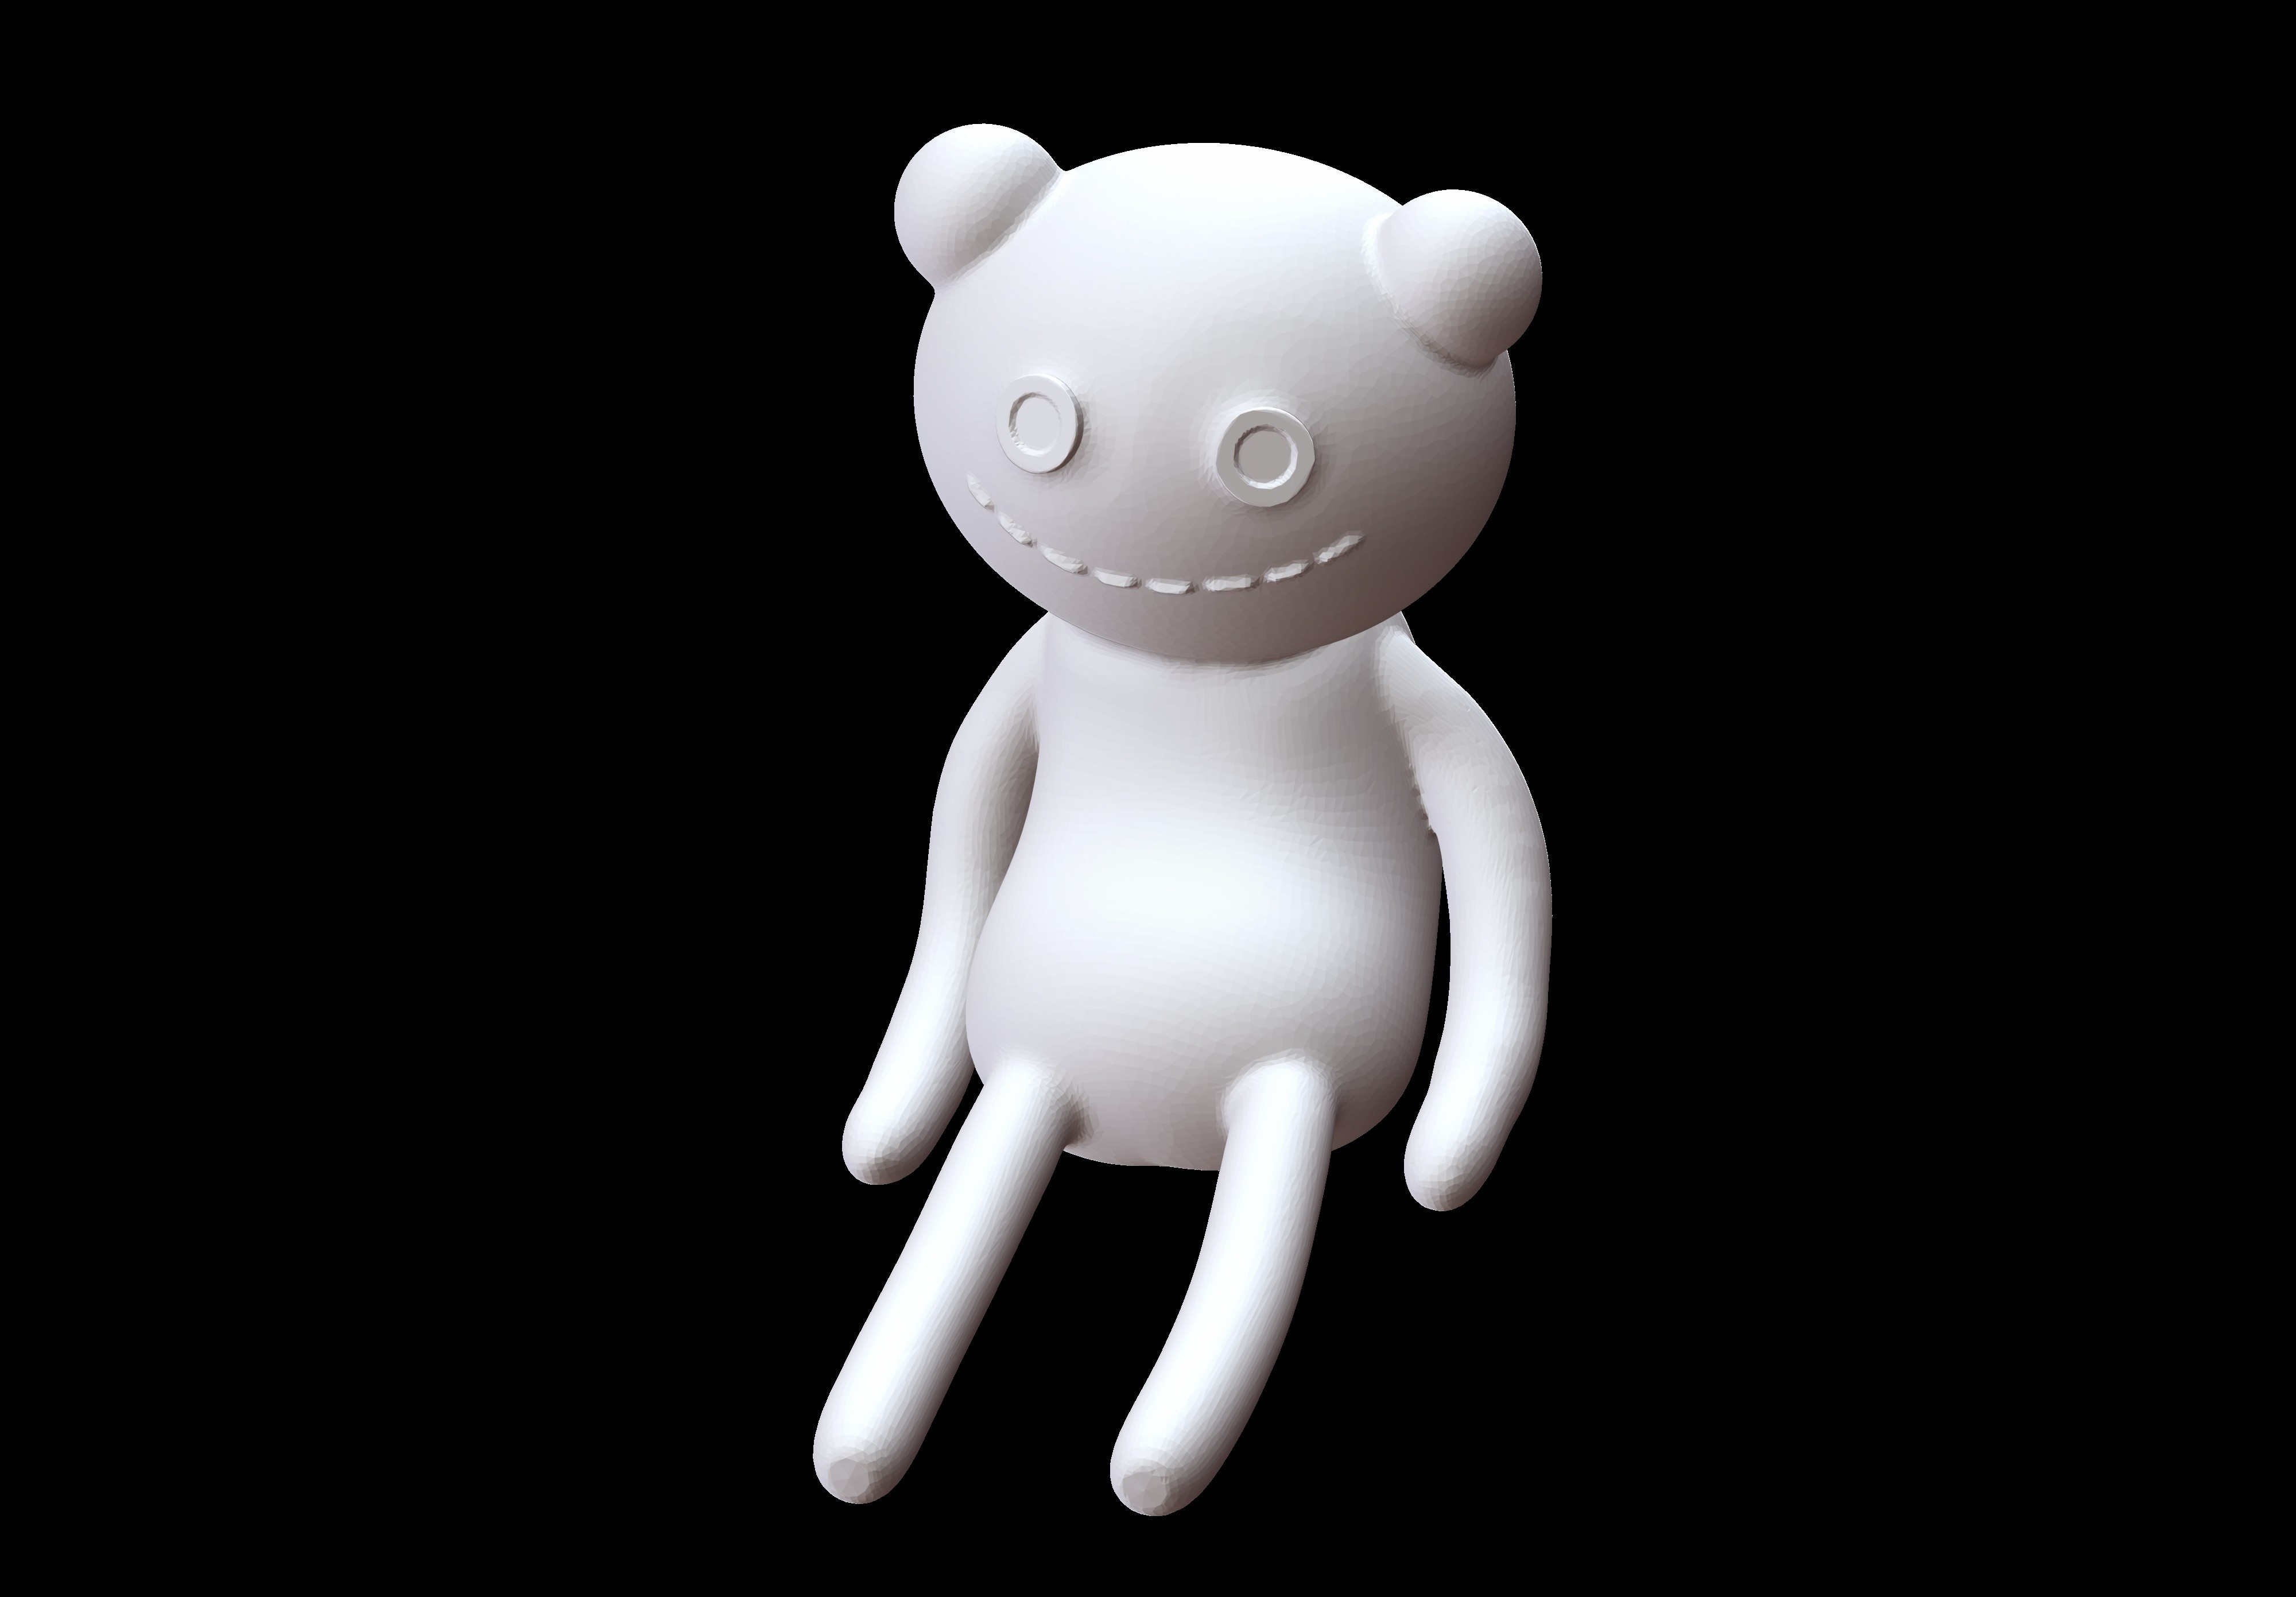 Render 11.jpg Download STL file Adventure Time Diorama • 3D printer design, Shukito